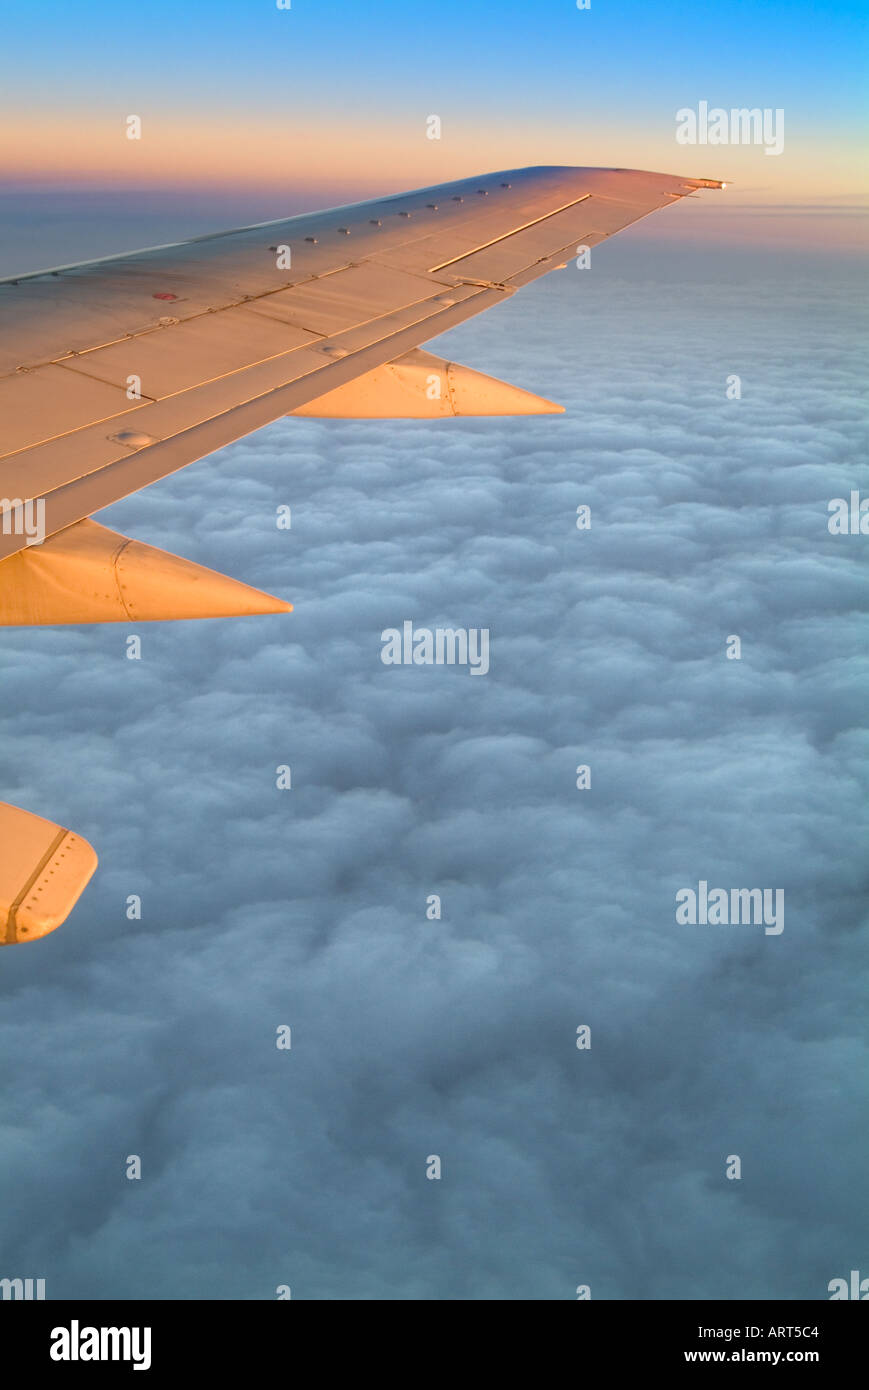 Airplane Jet Wing Flying Above The Clouds At Sunise - Stock Image